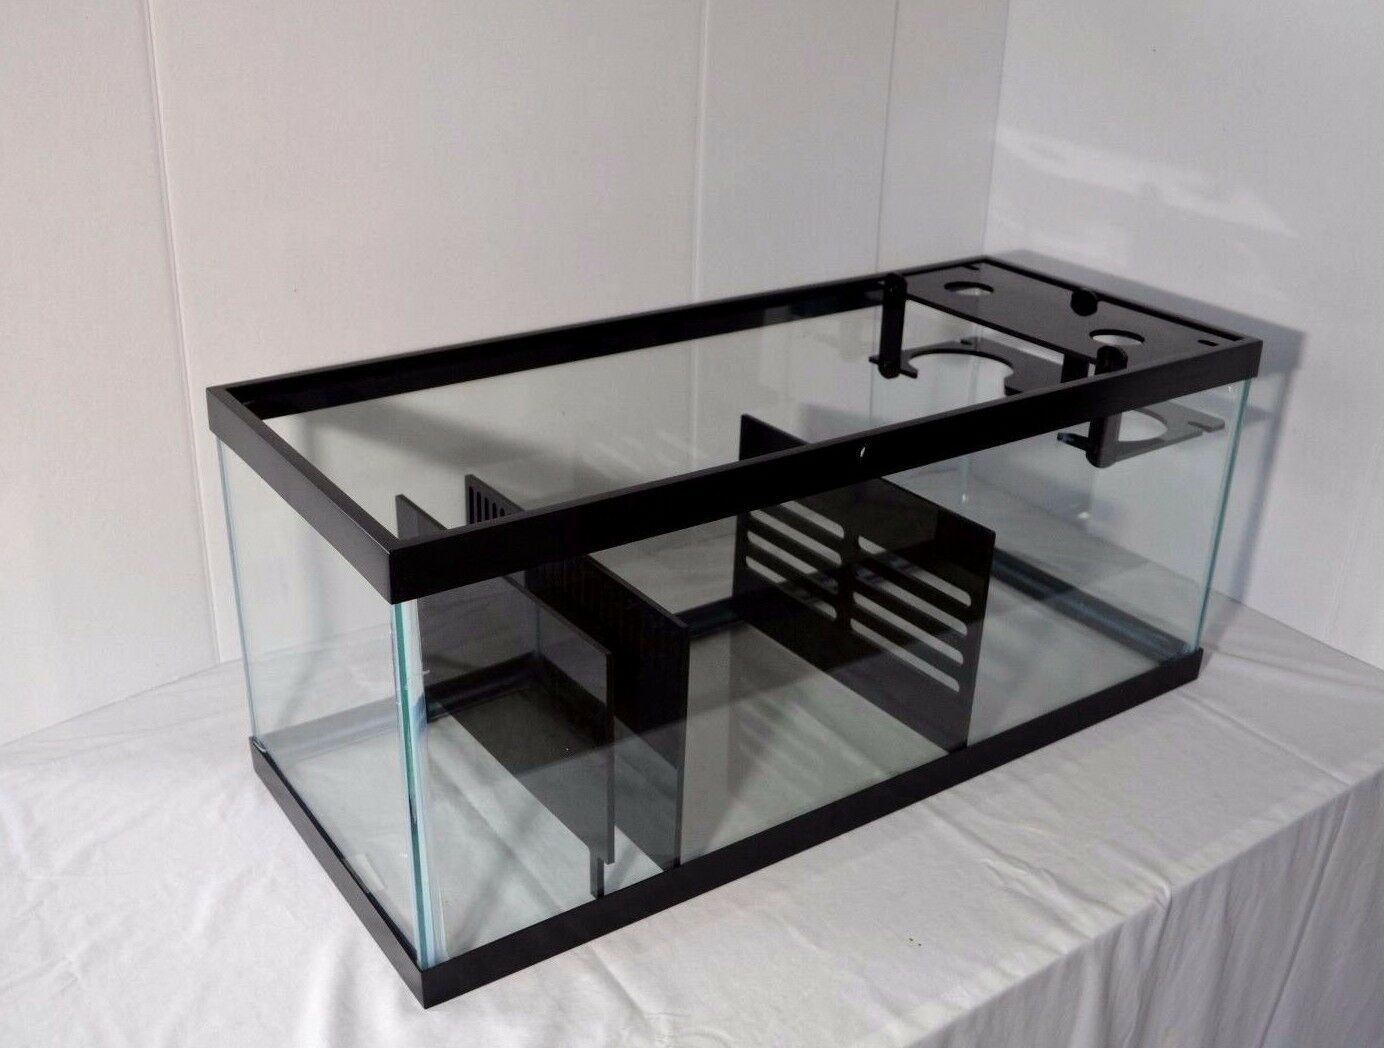 30 x12 x12  -20 GAL Long aquarium sump